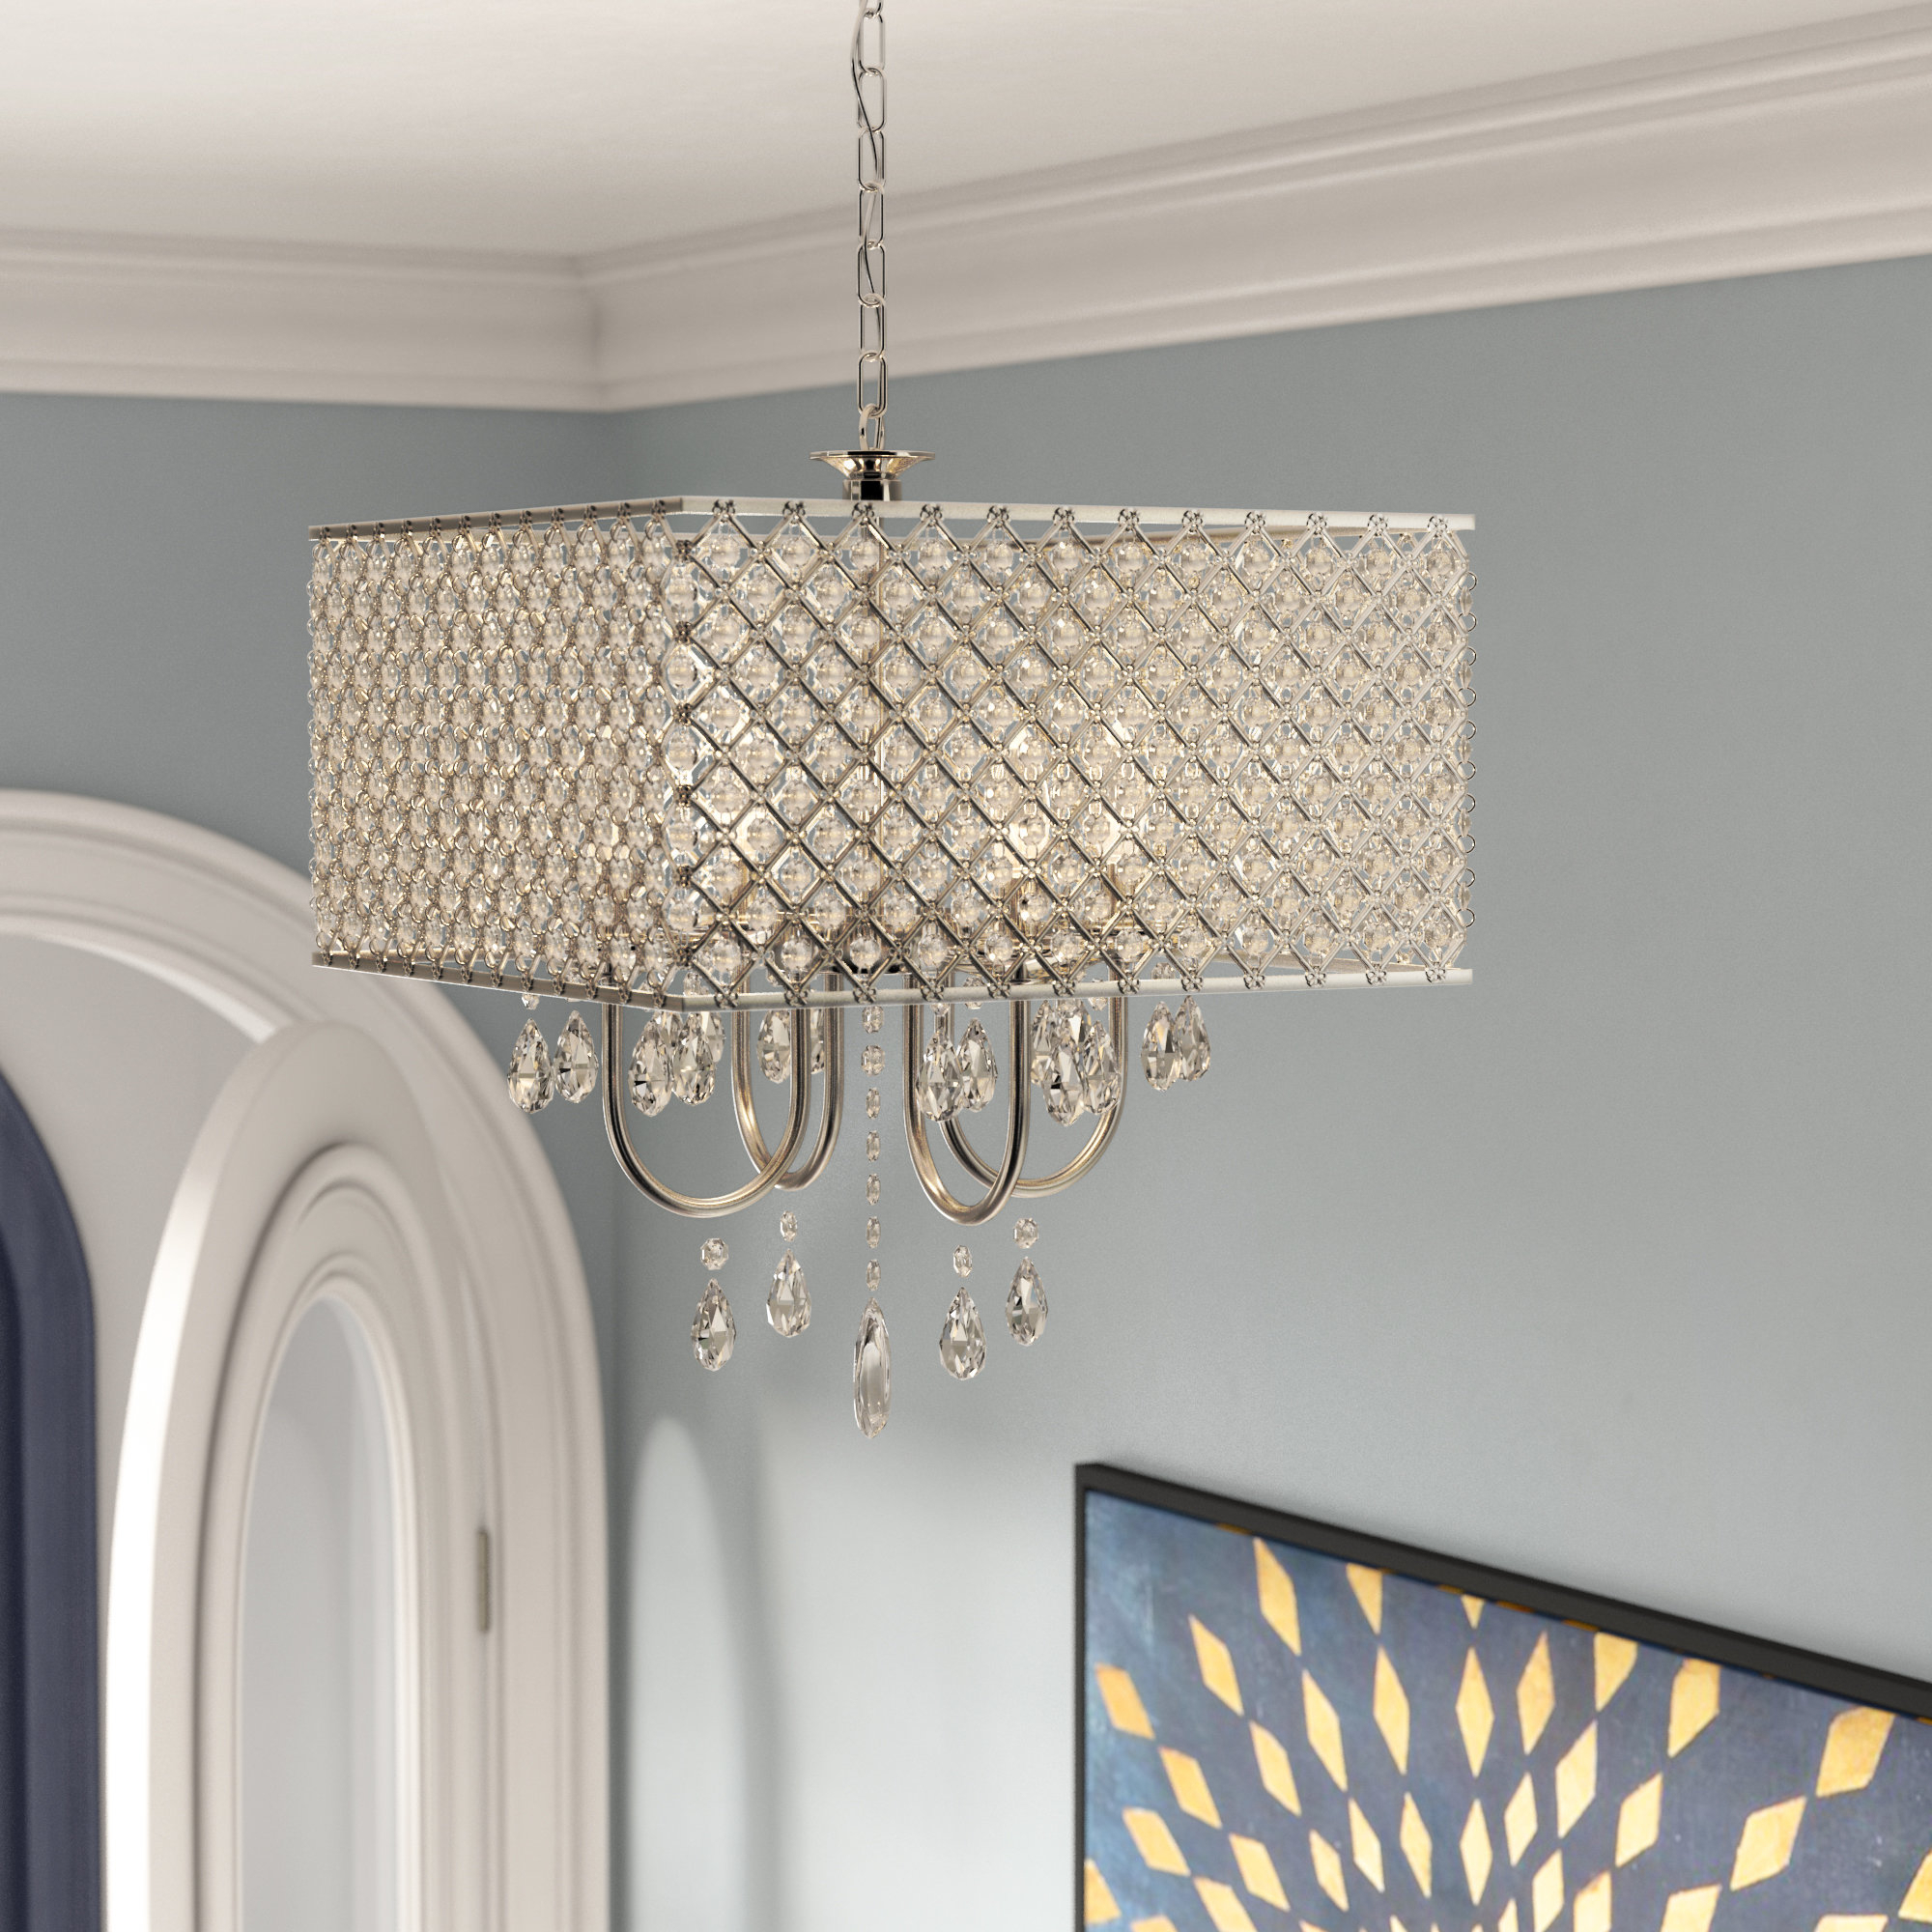 Garrin Square 4 Light Crystal Chandelier Regarding 2019 Aurore 4 Light Crystal Chandeliers (View 3 of 25)